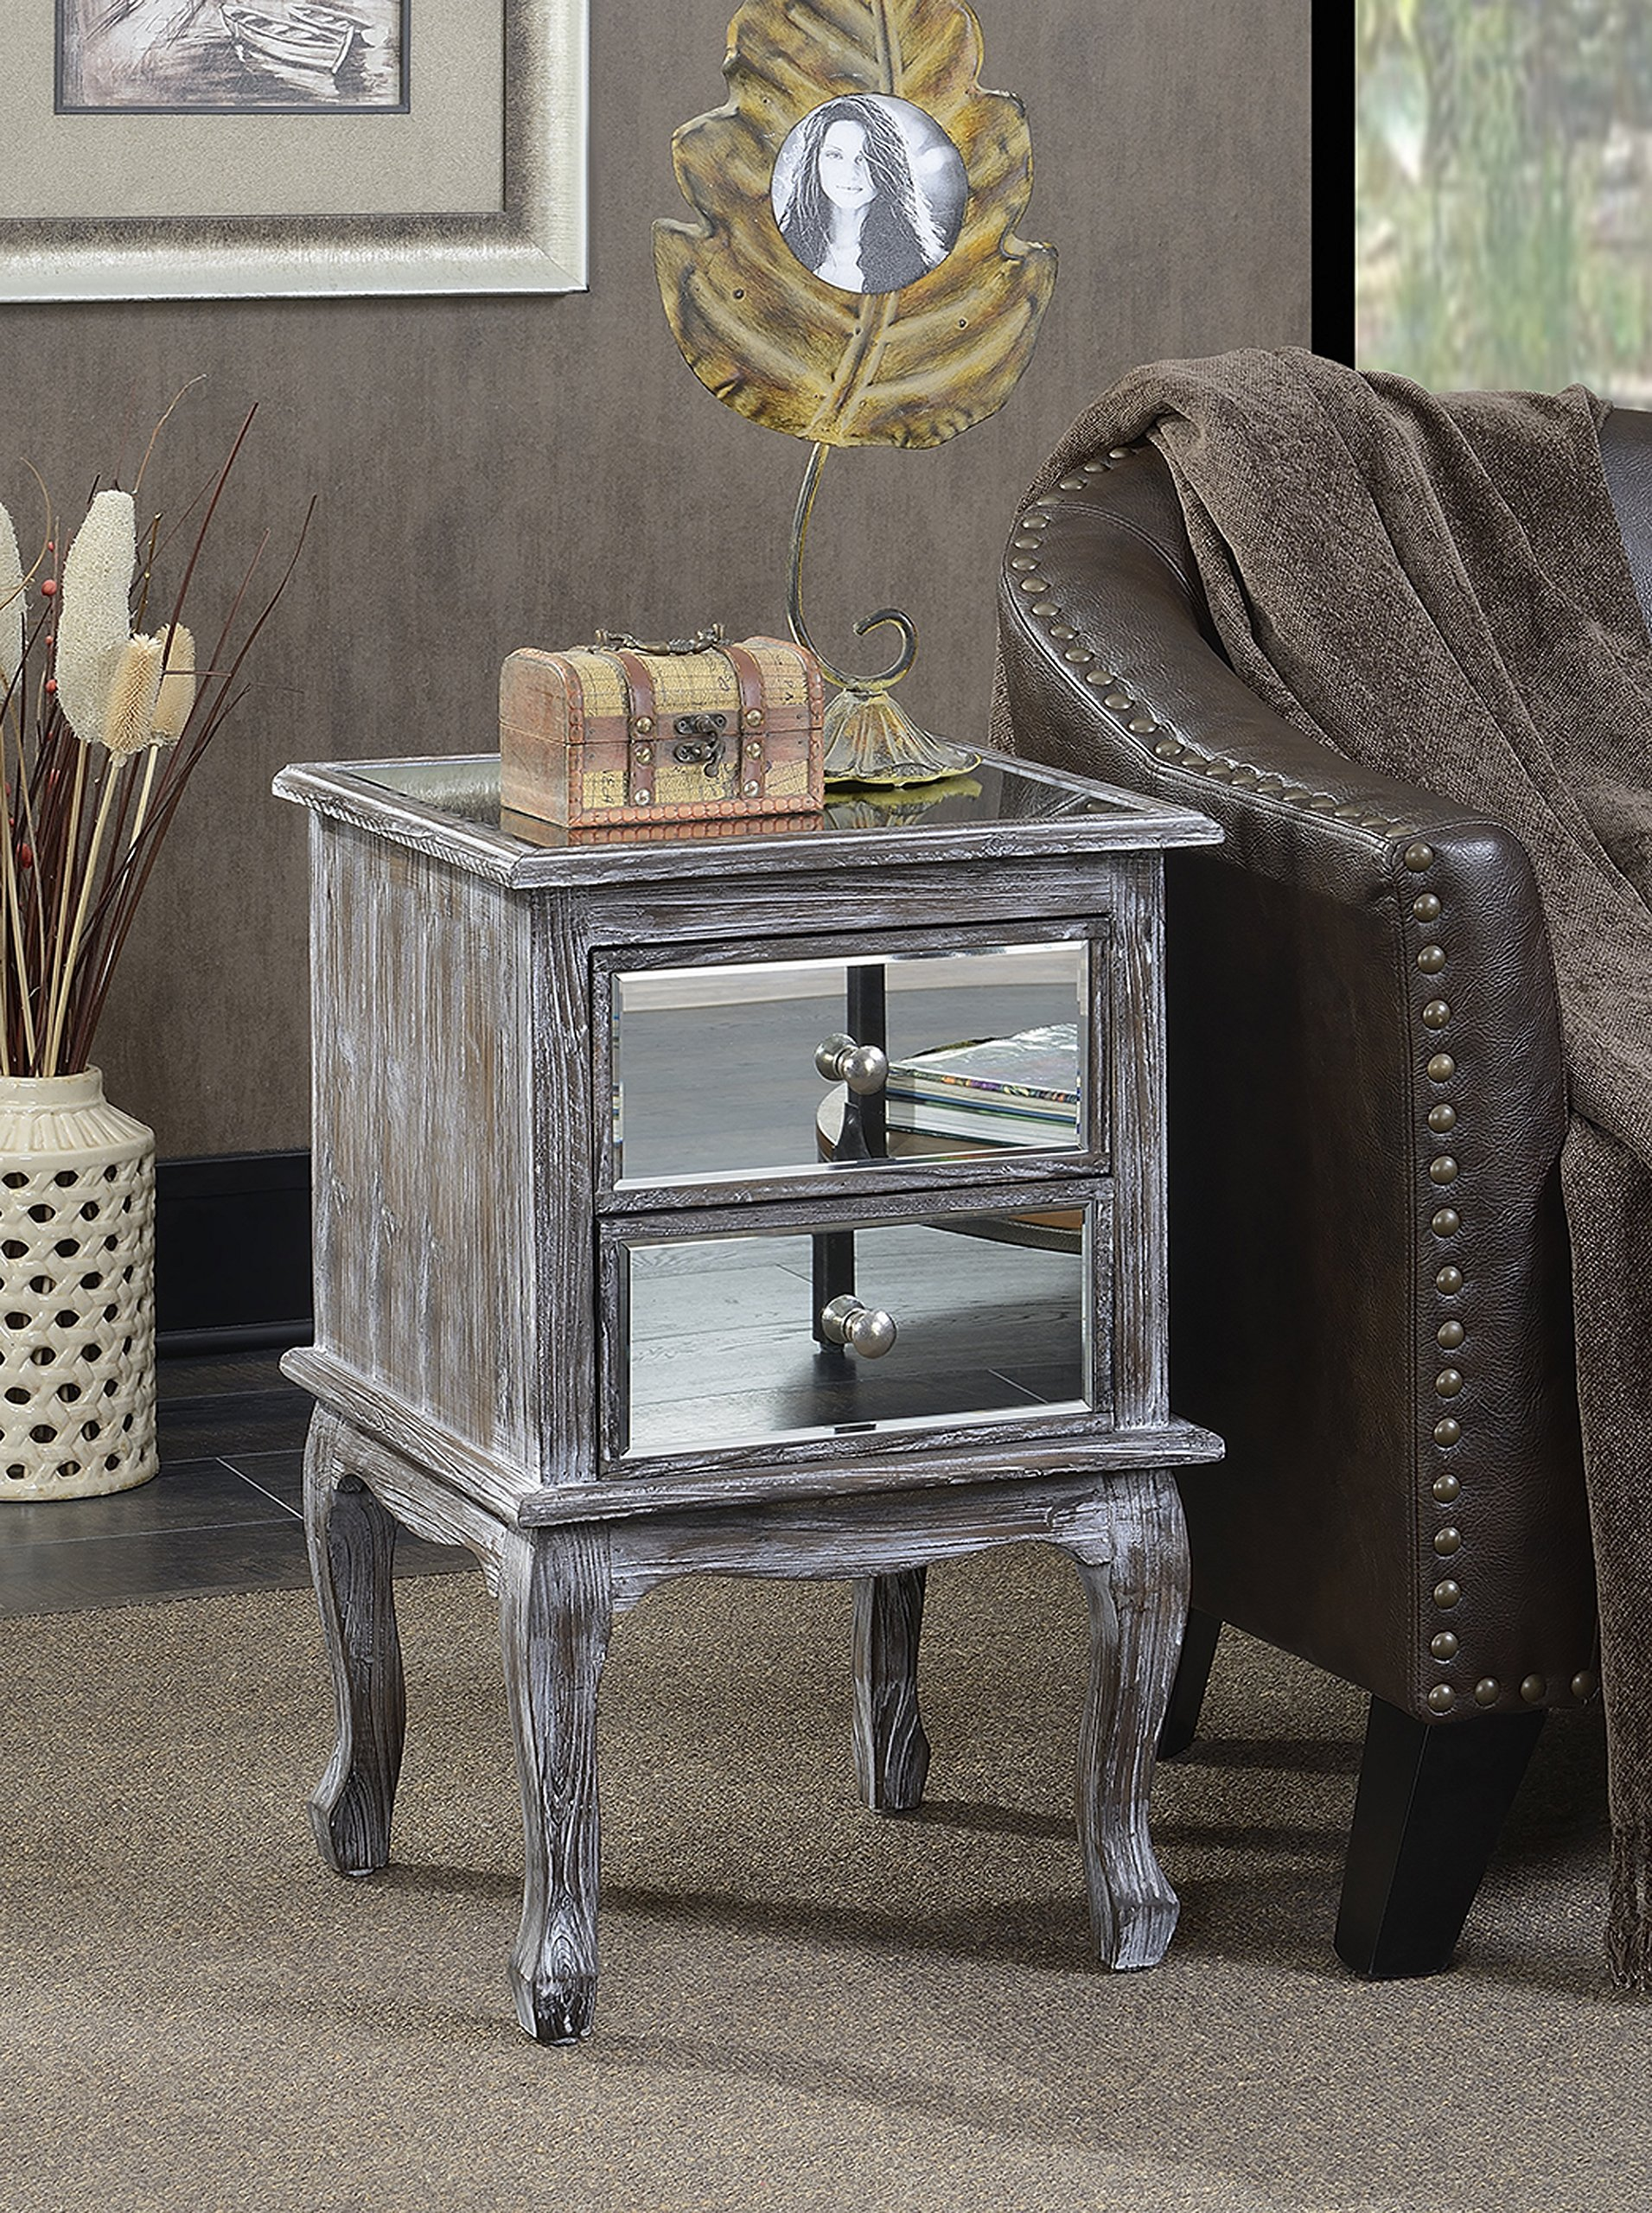 Convenience Concepts Gold Coast Collection Queen Anne Mirrored End Table, Weathered Gray